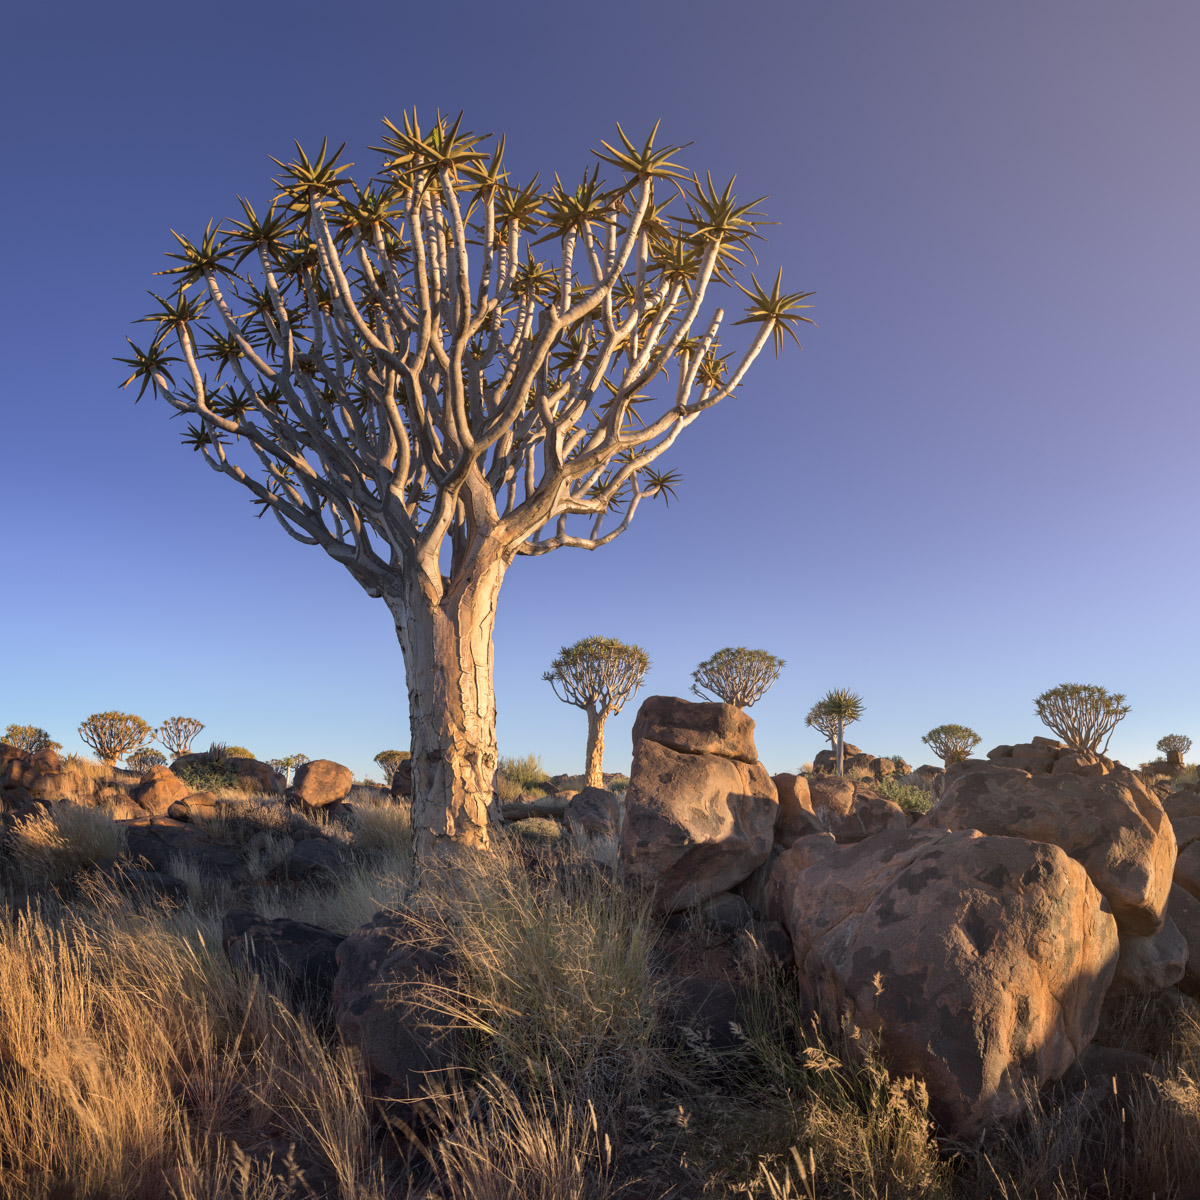 Quiver Tree Forest in the Evening, Keetmanshoop, Namibia